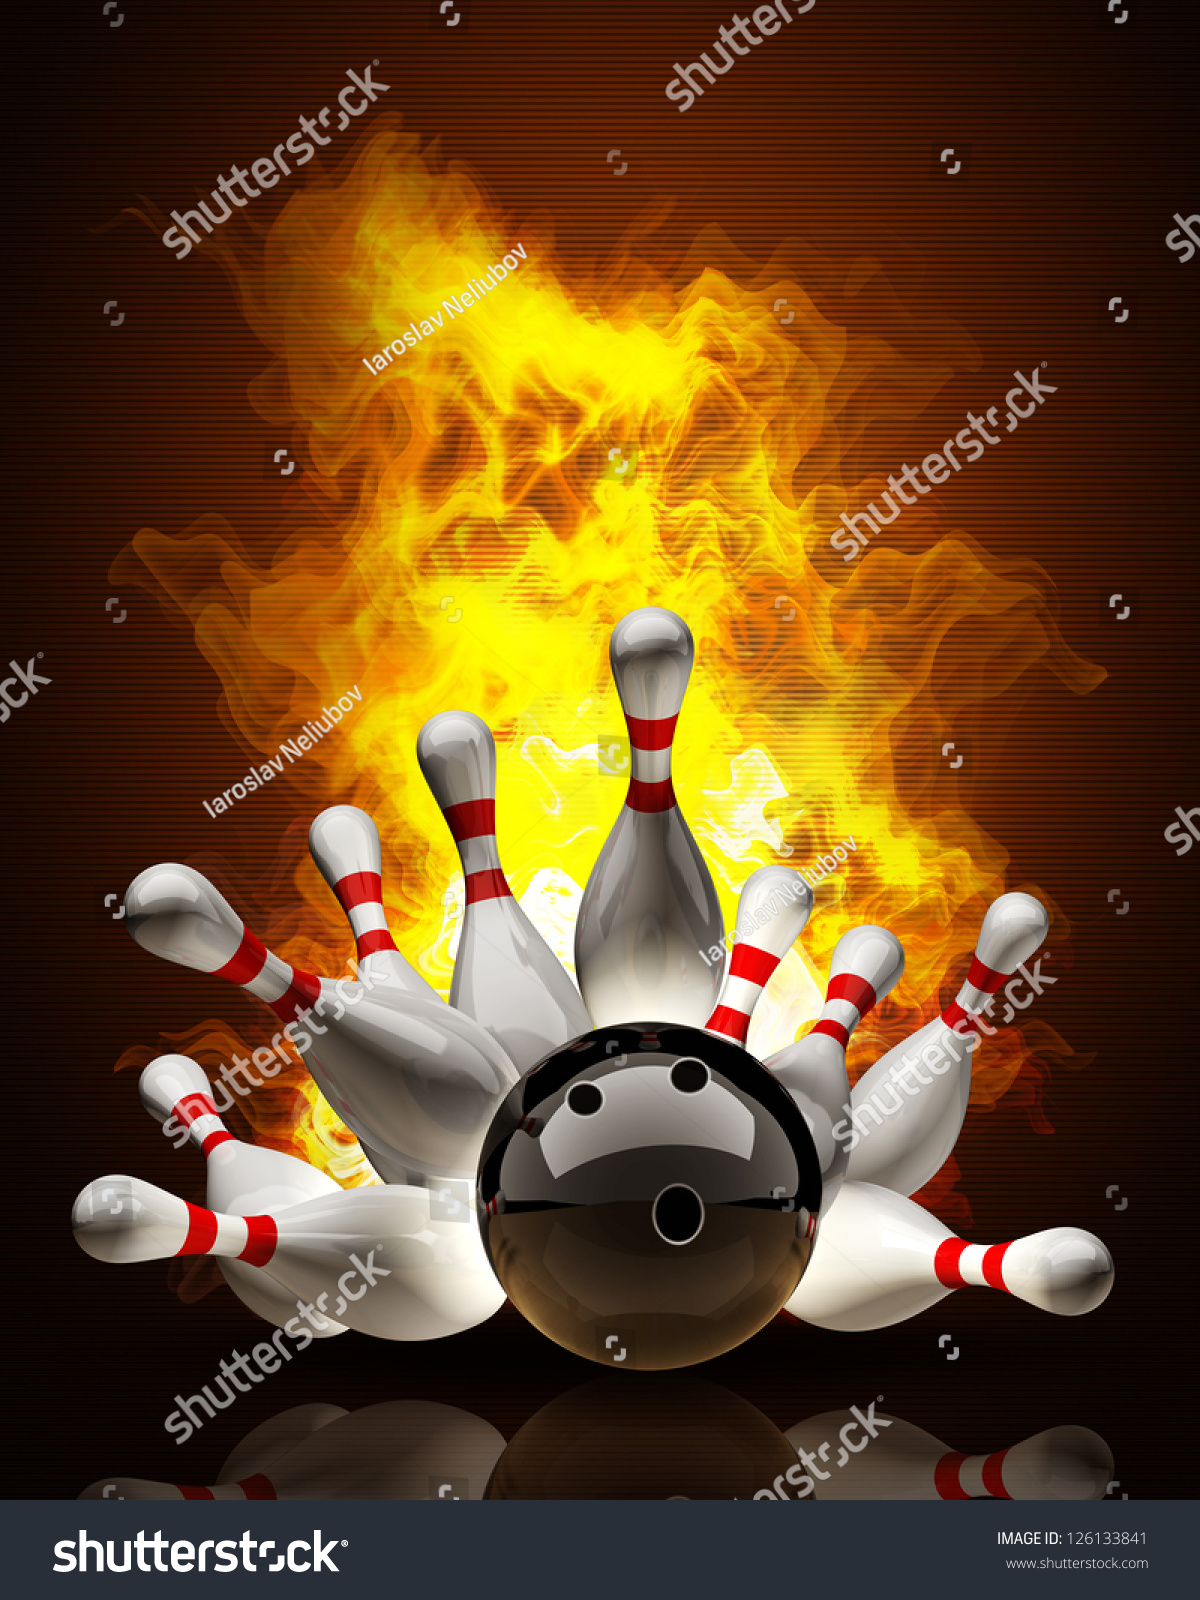 Abstract Bowling Ball Crashing Into The Pins On Fire High